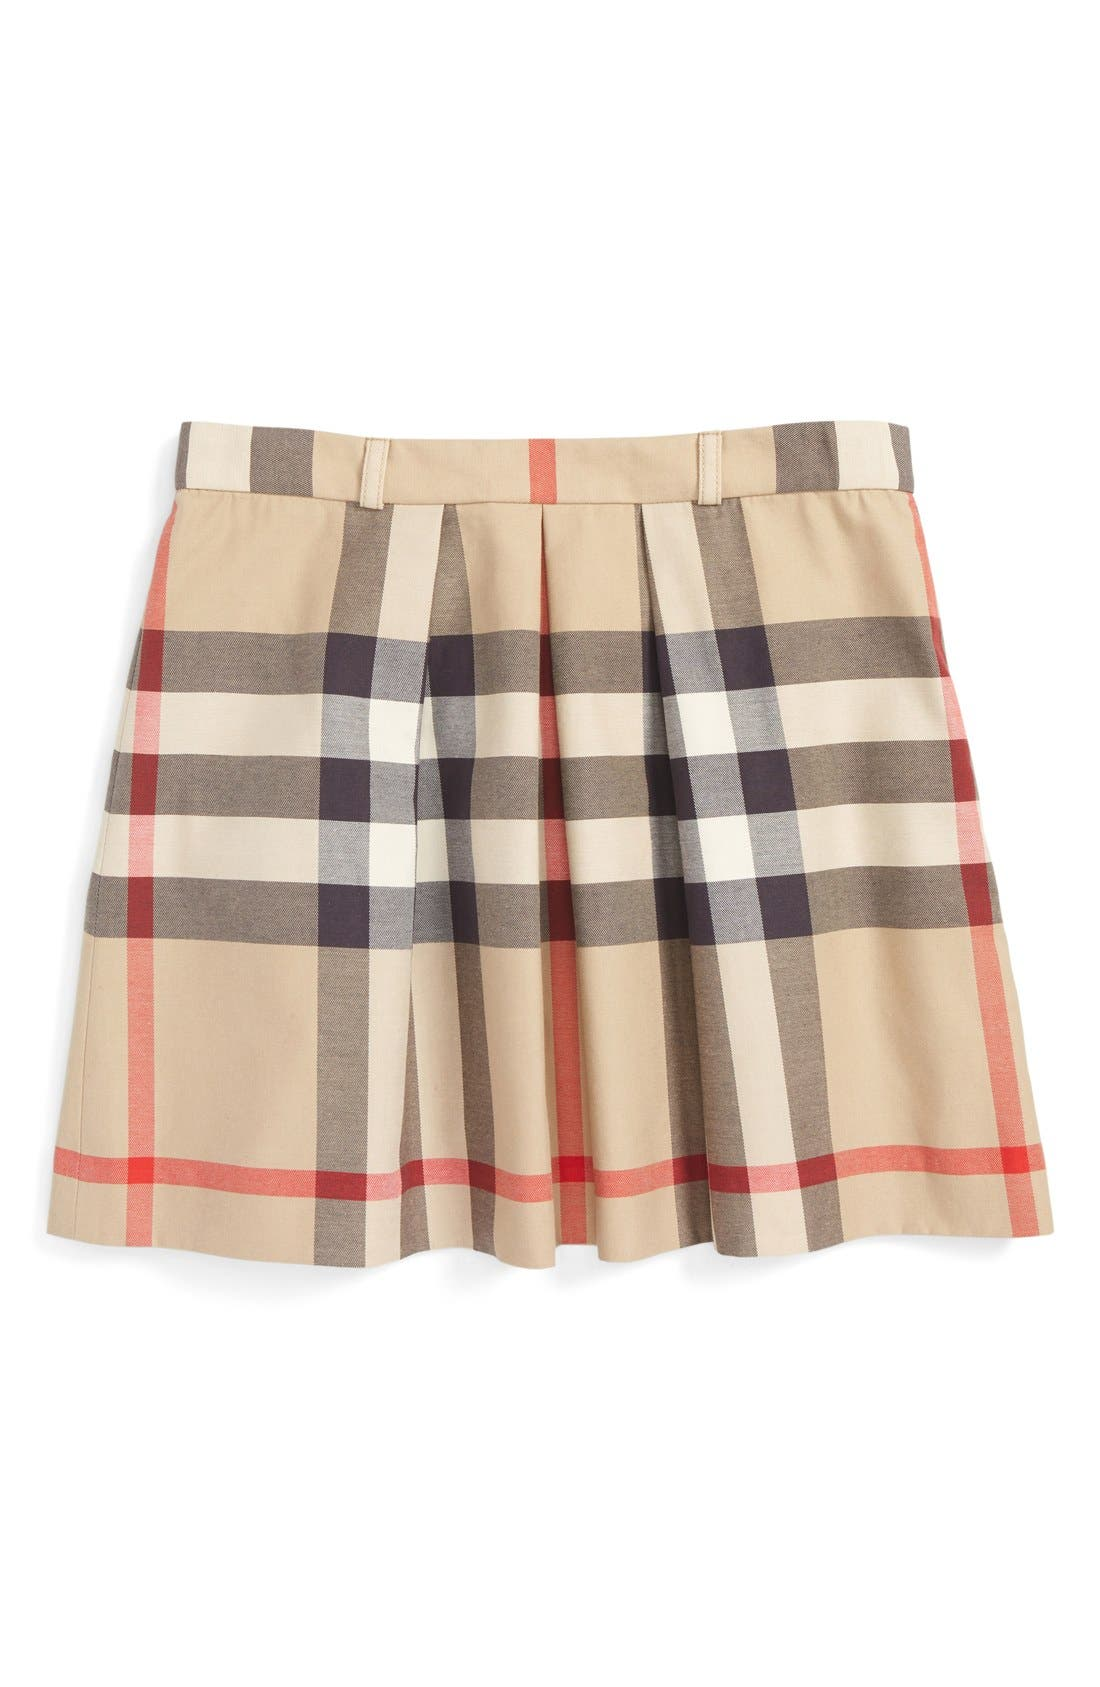 BURBERRY,                             Pleated Check Skirt,                             Main thumbnail 1, color,                             272